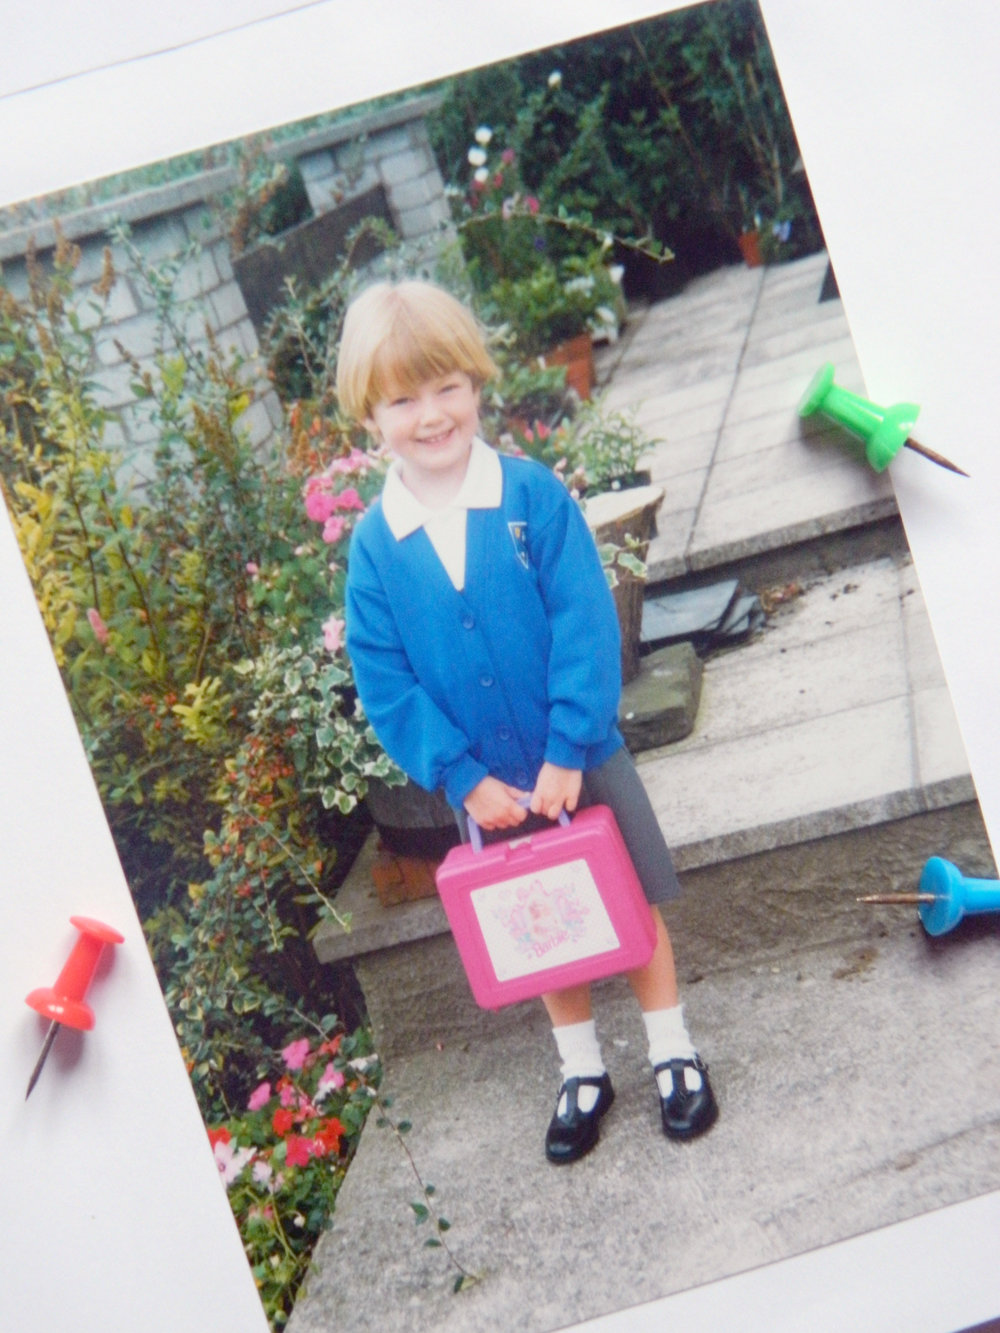 My first day of school circa 1996.